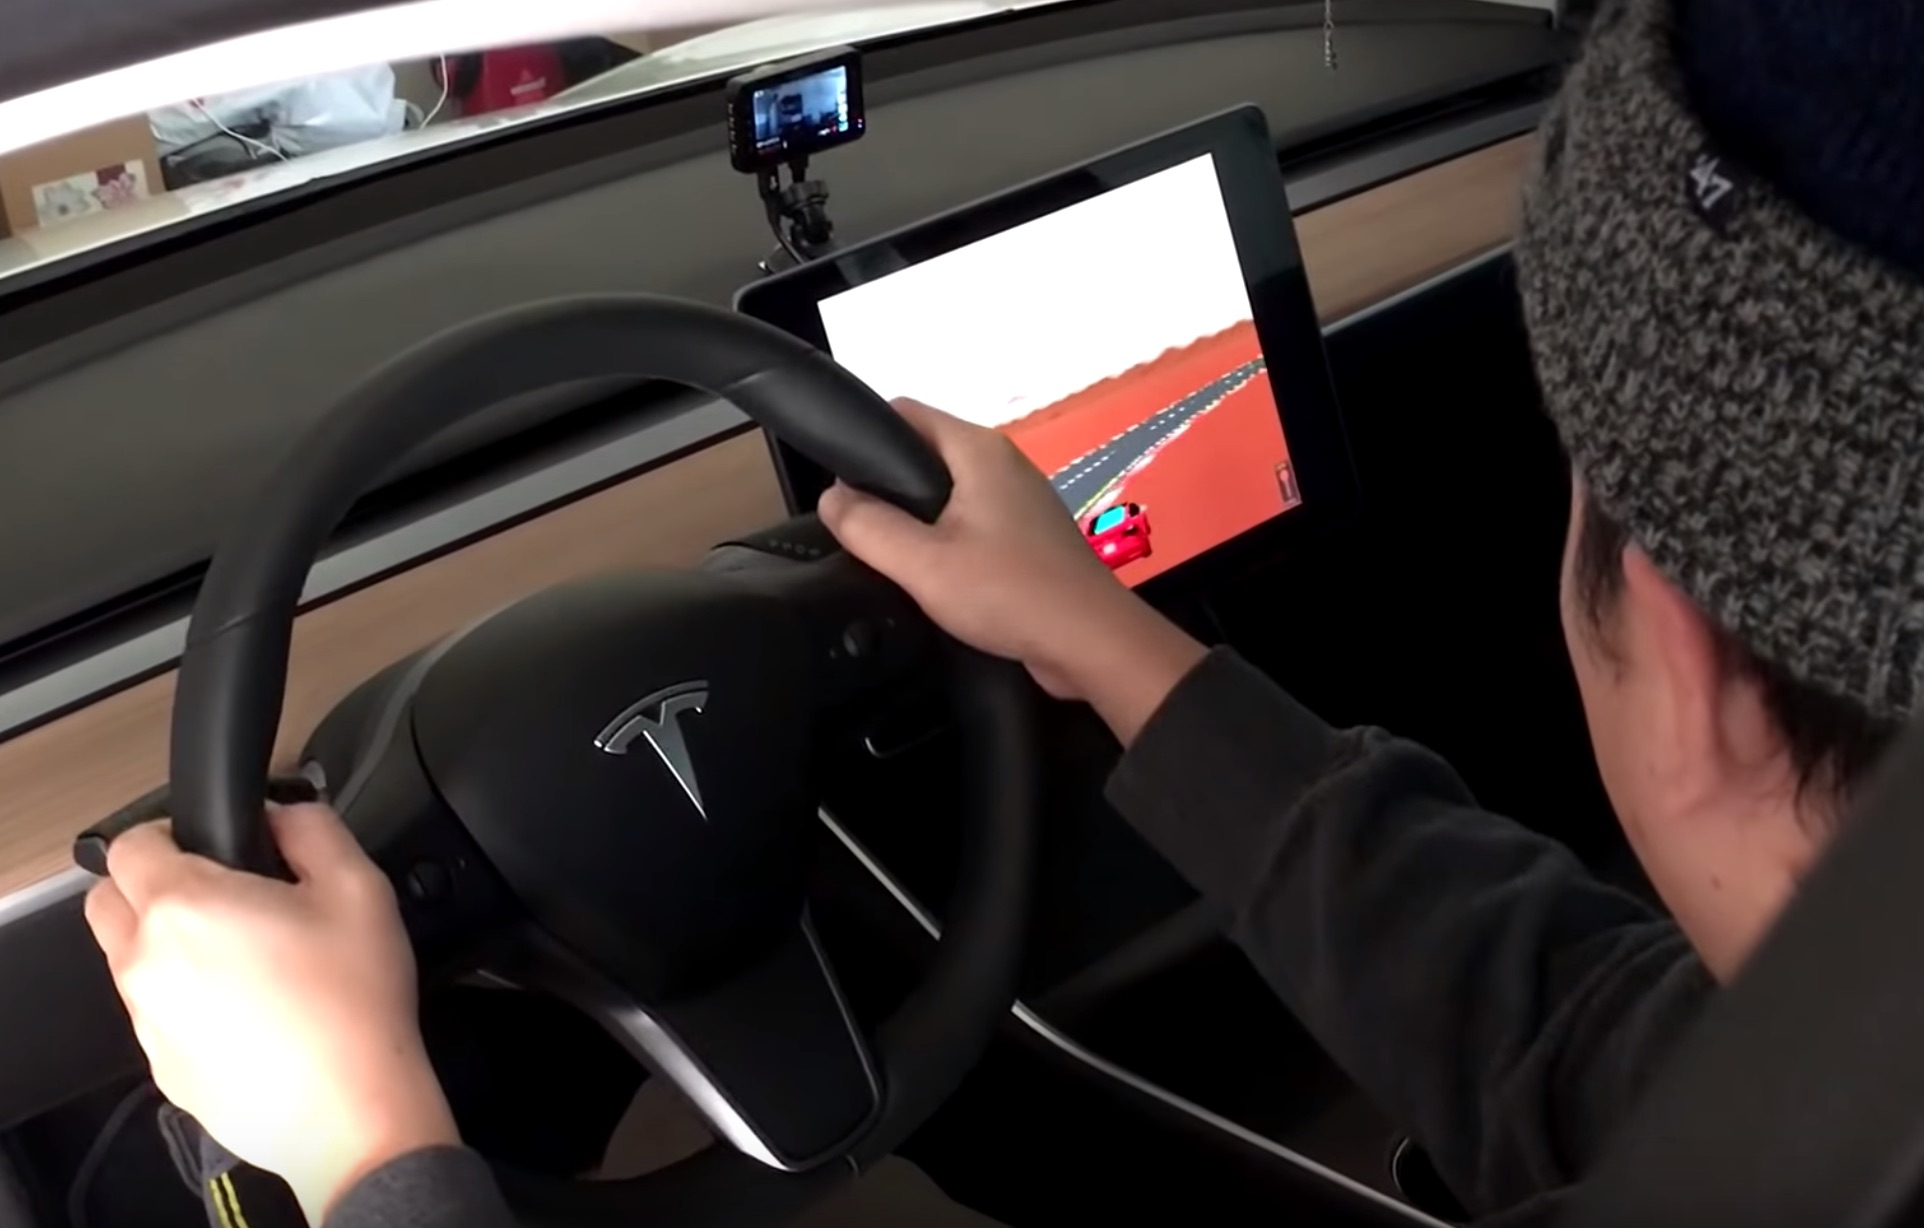 Tesla rolls out classic Pole Position game for in-car